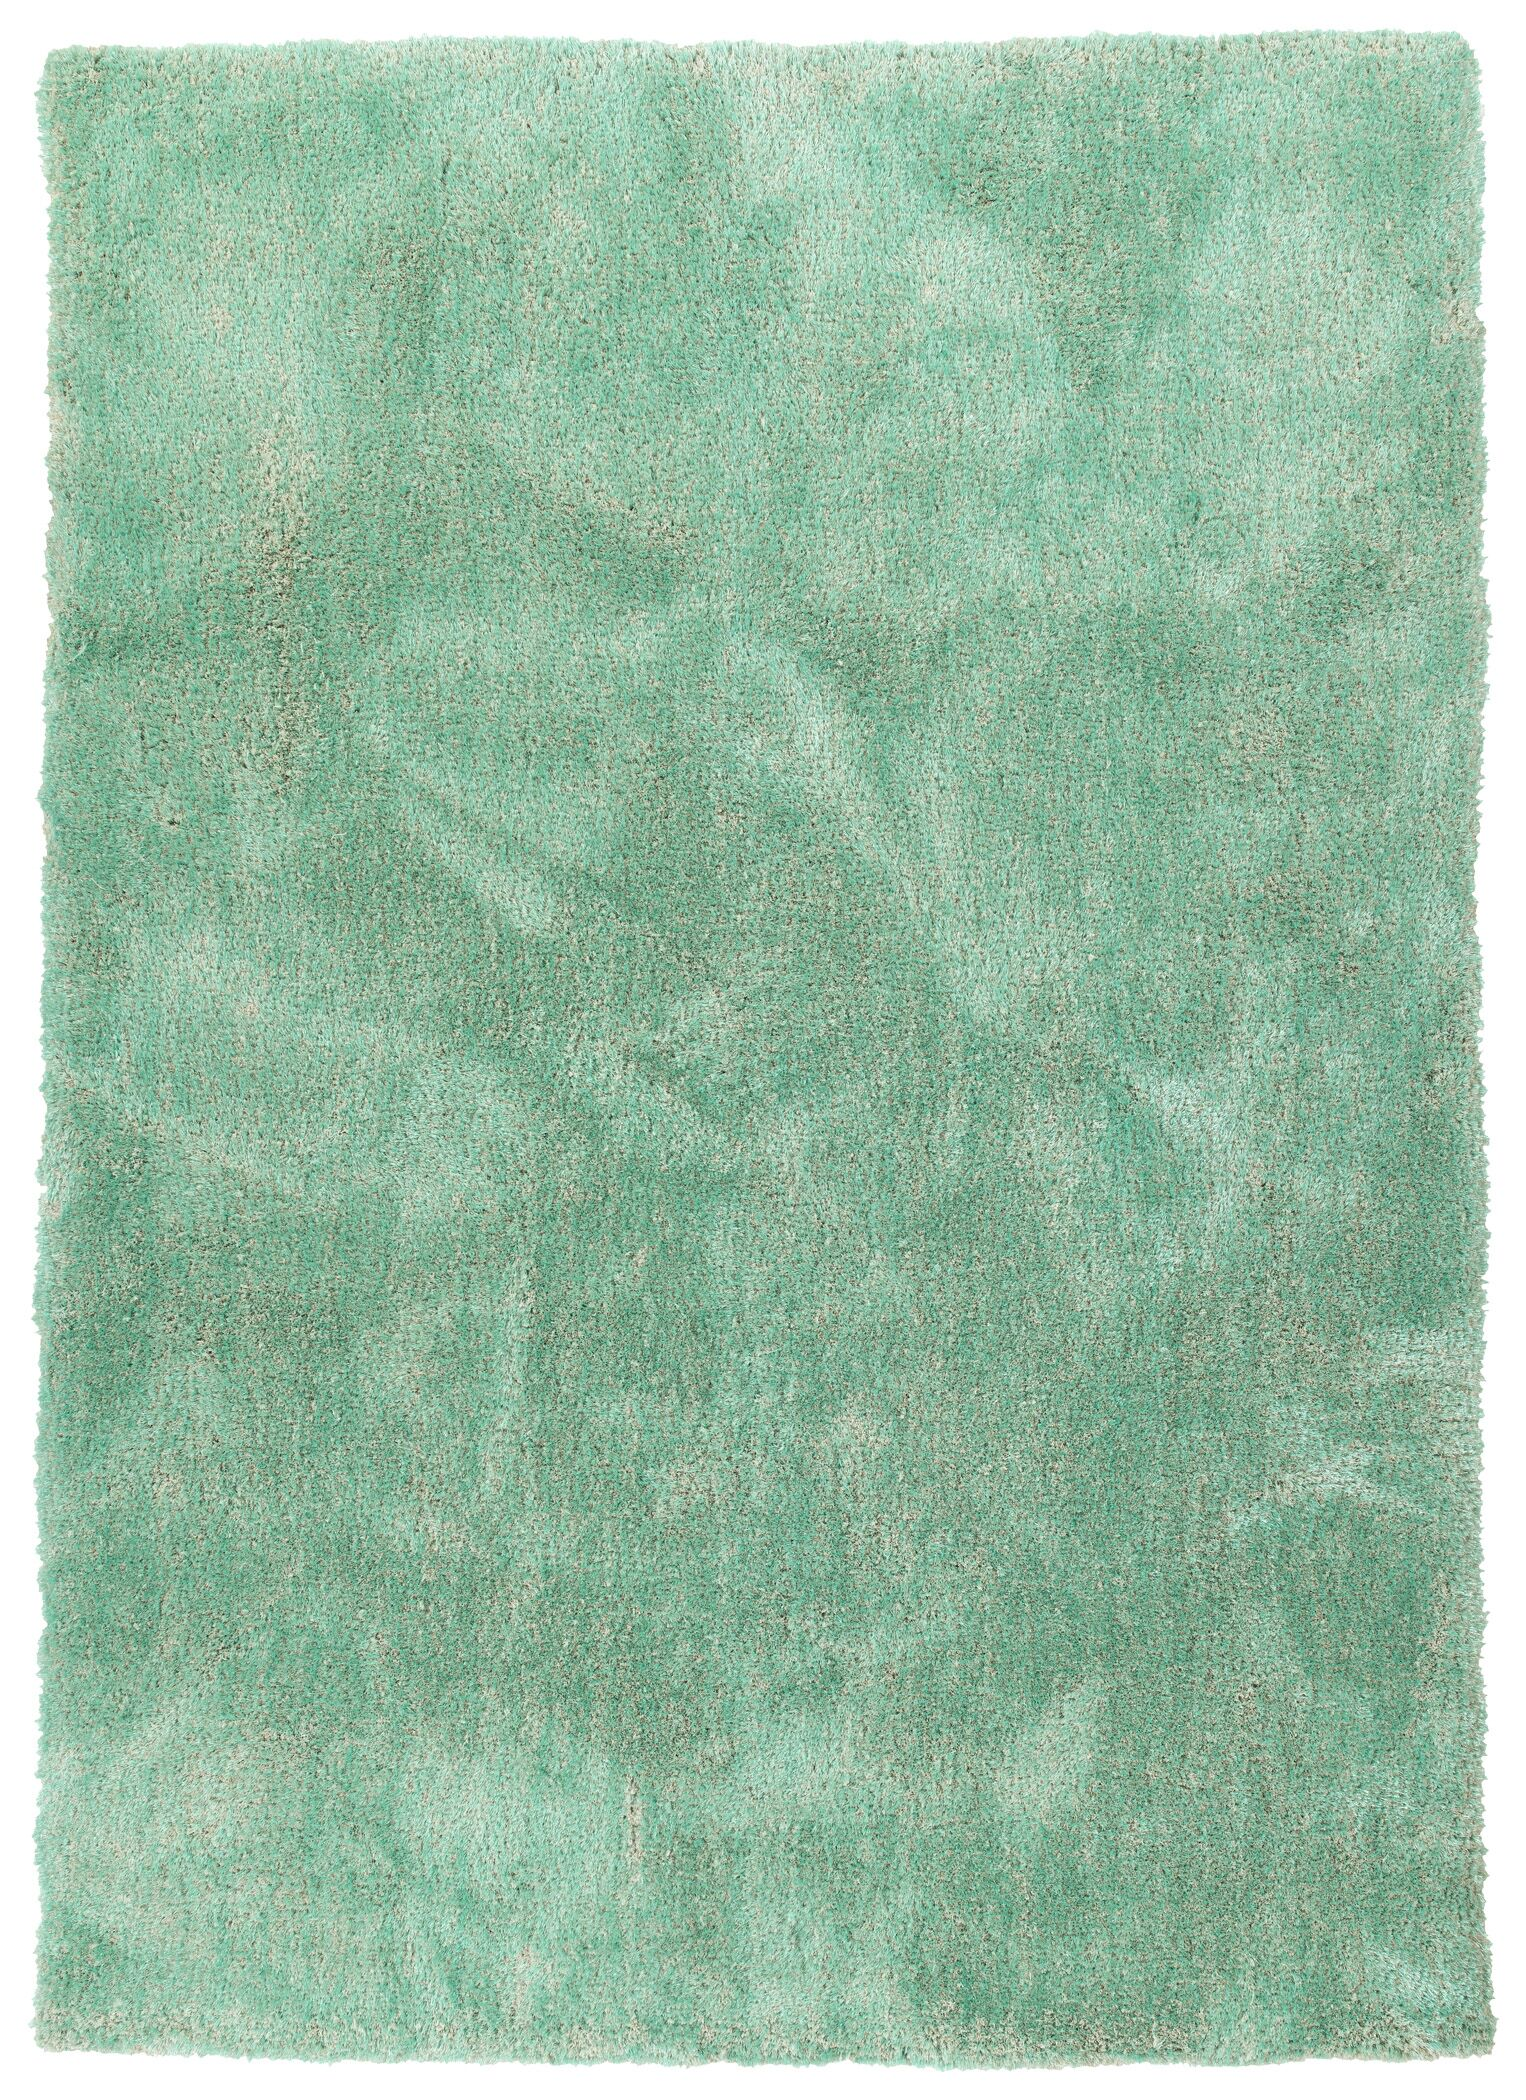 Bieber Turquoise Area Rug Rug Size: Rectangle 5' x 7'